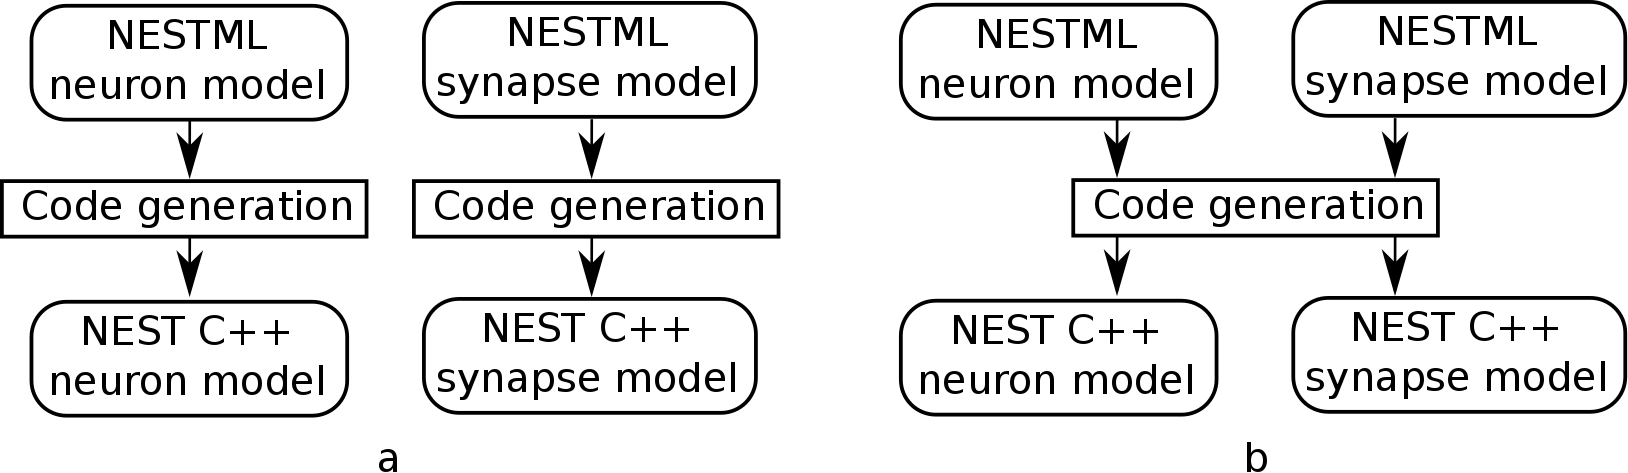 https://raw.githubusercontent.com/nest/nestml/d4bf4f521d726dd638e8a264c7253a5746bcaaae/doc/fig/neuron_synapse_co_generation.png